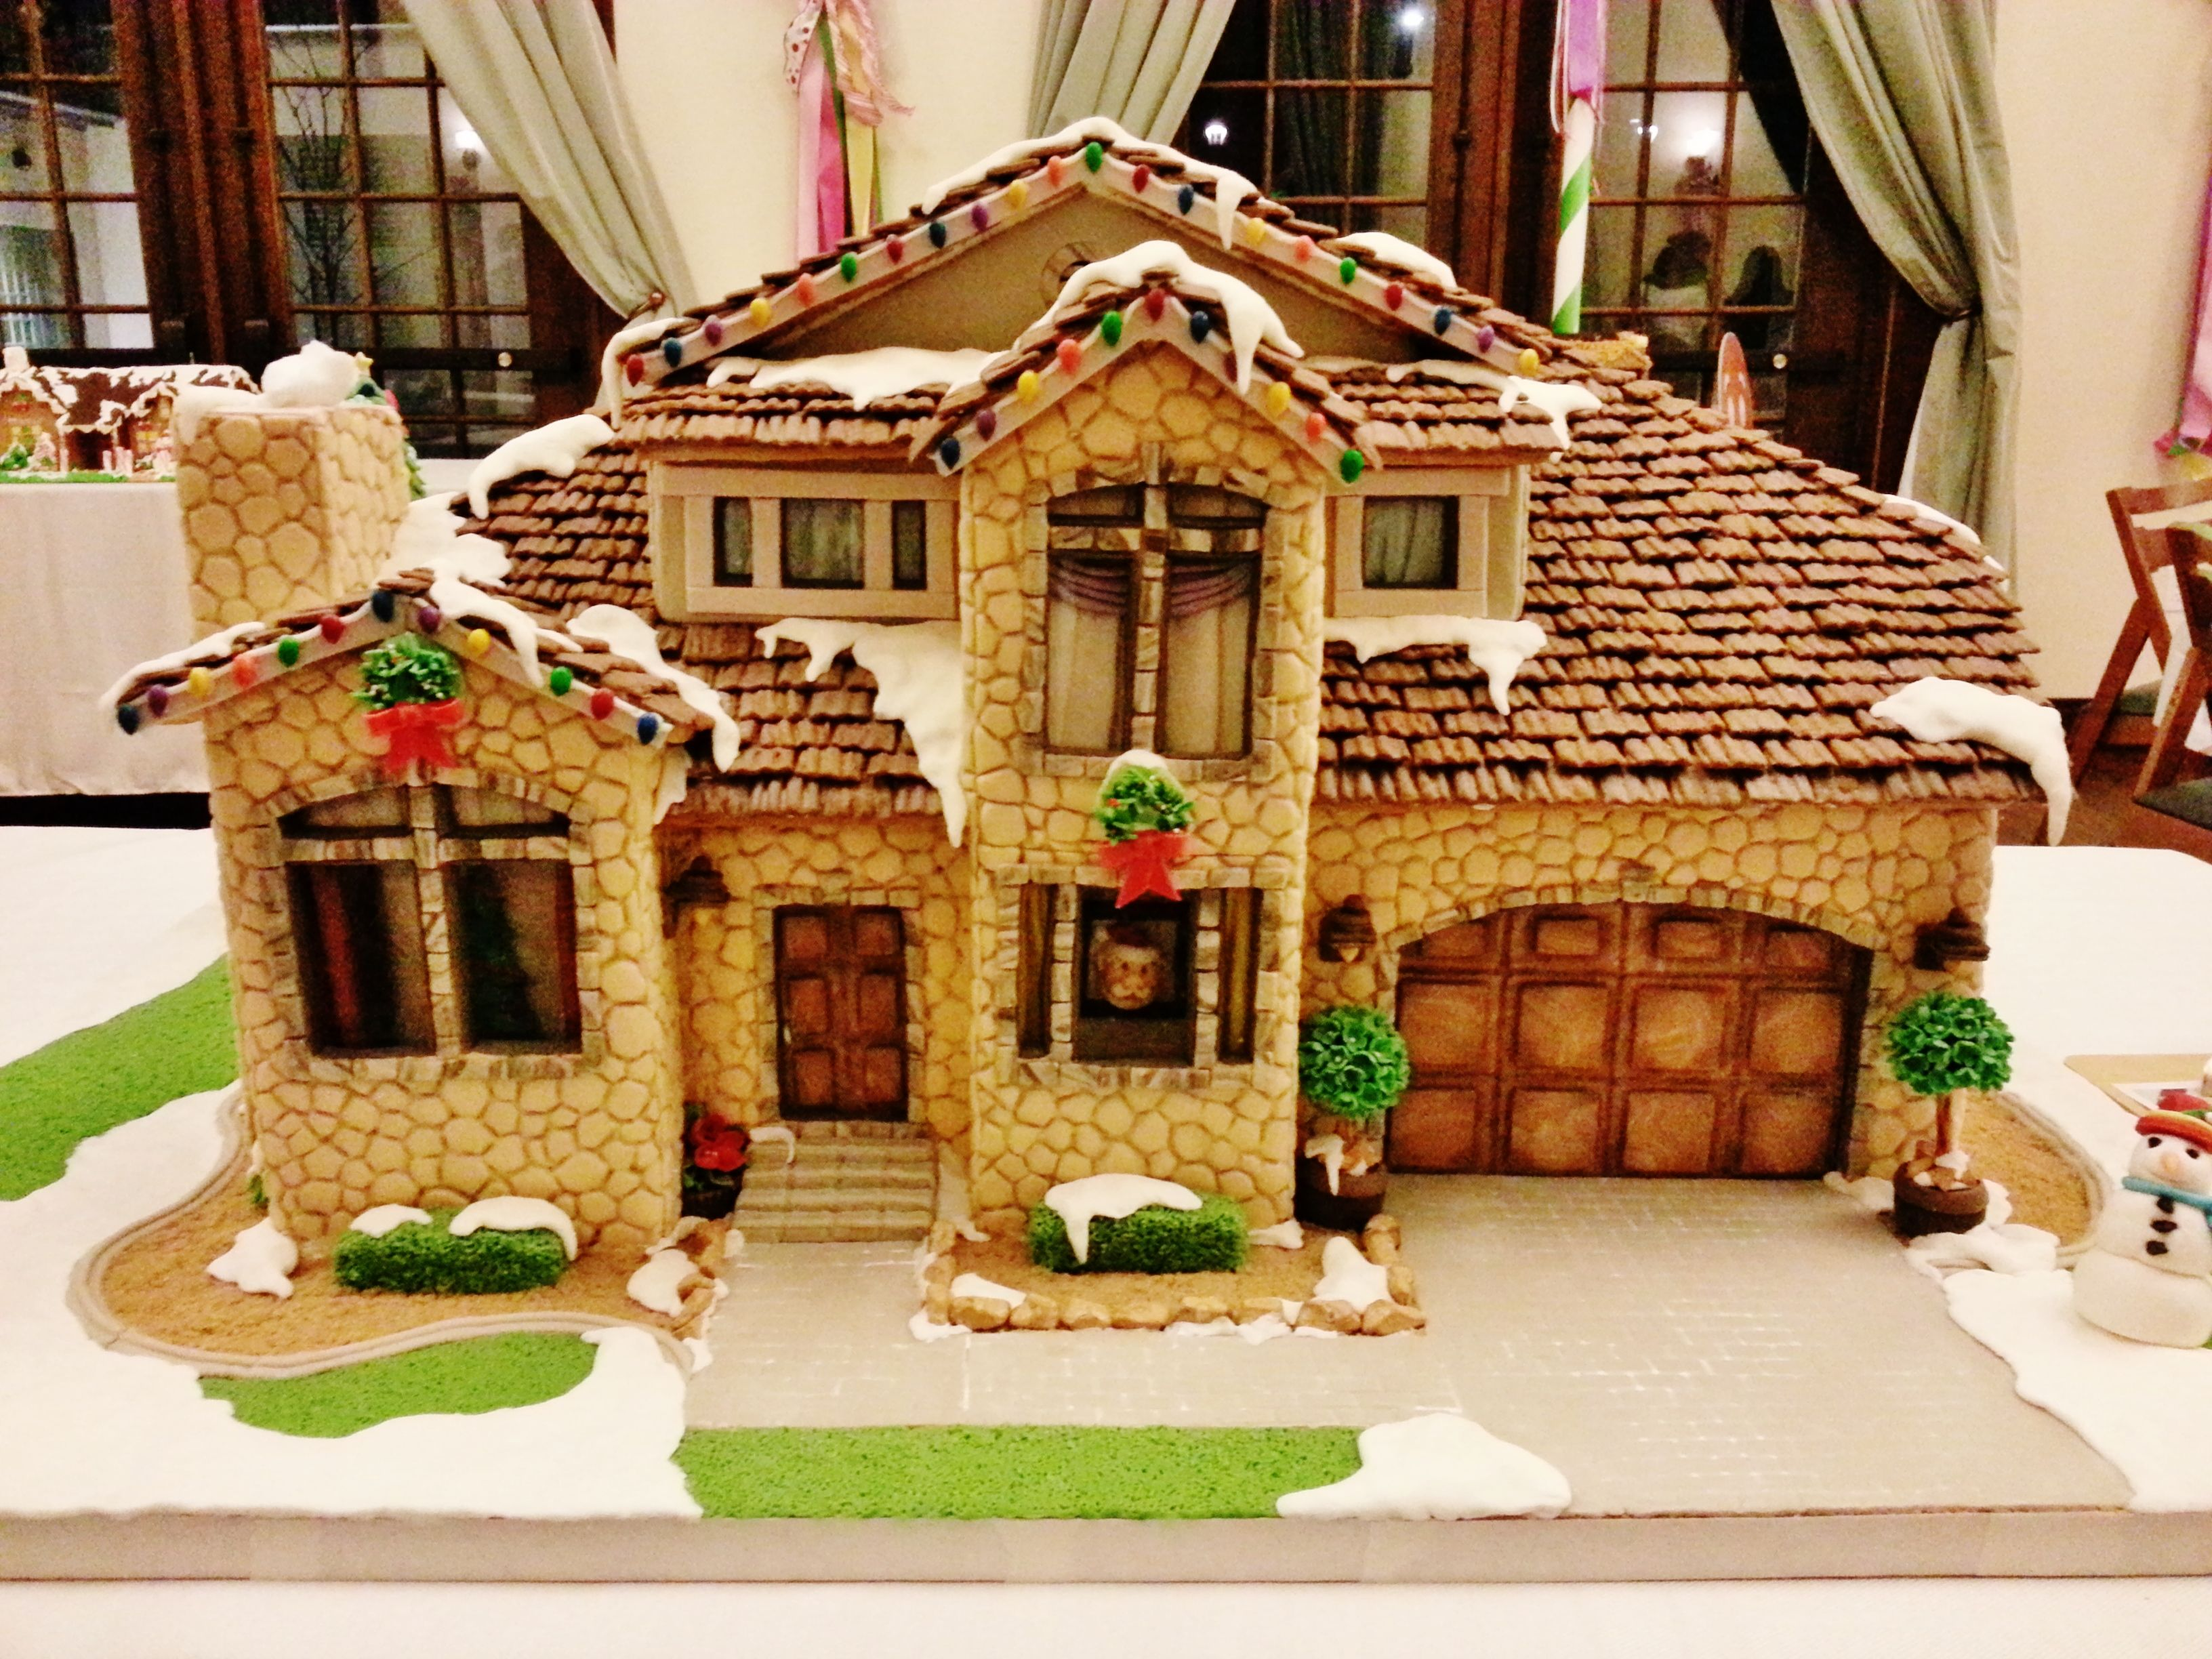 Ideas for a gingerbread house - 17 Best Images About Gingerbread House Ideas On Pinterest Local Artists Gingerbread Houses And House